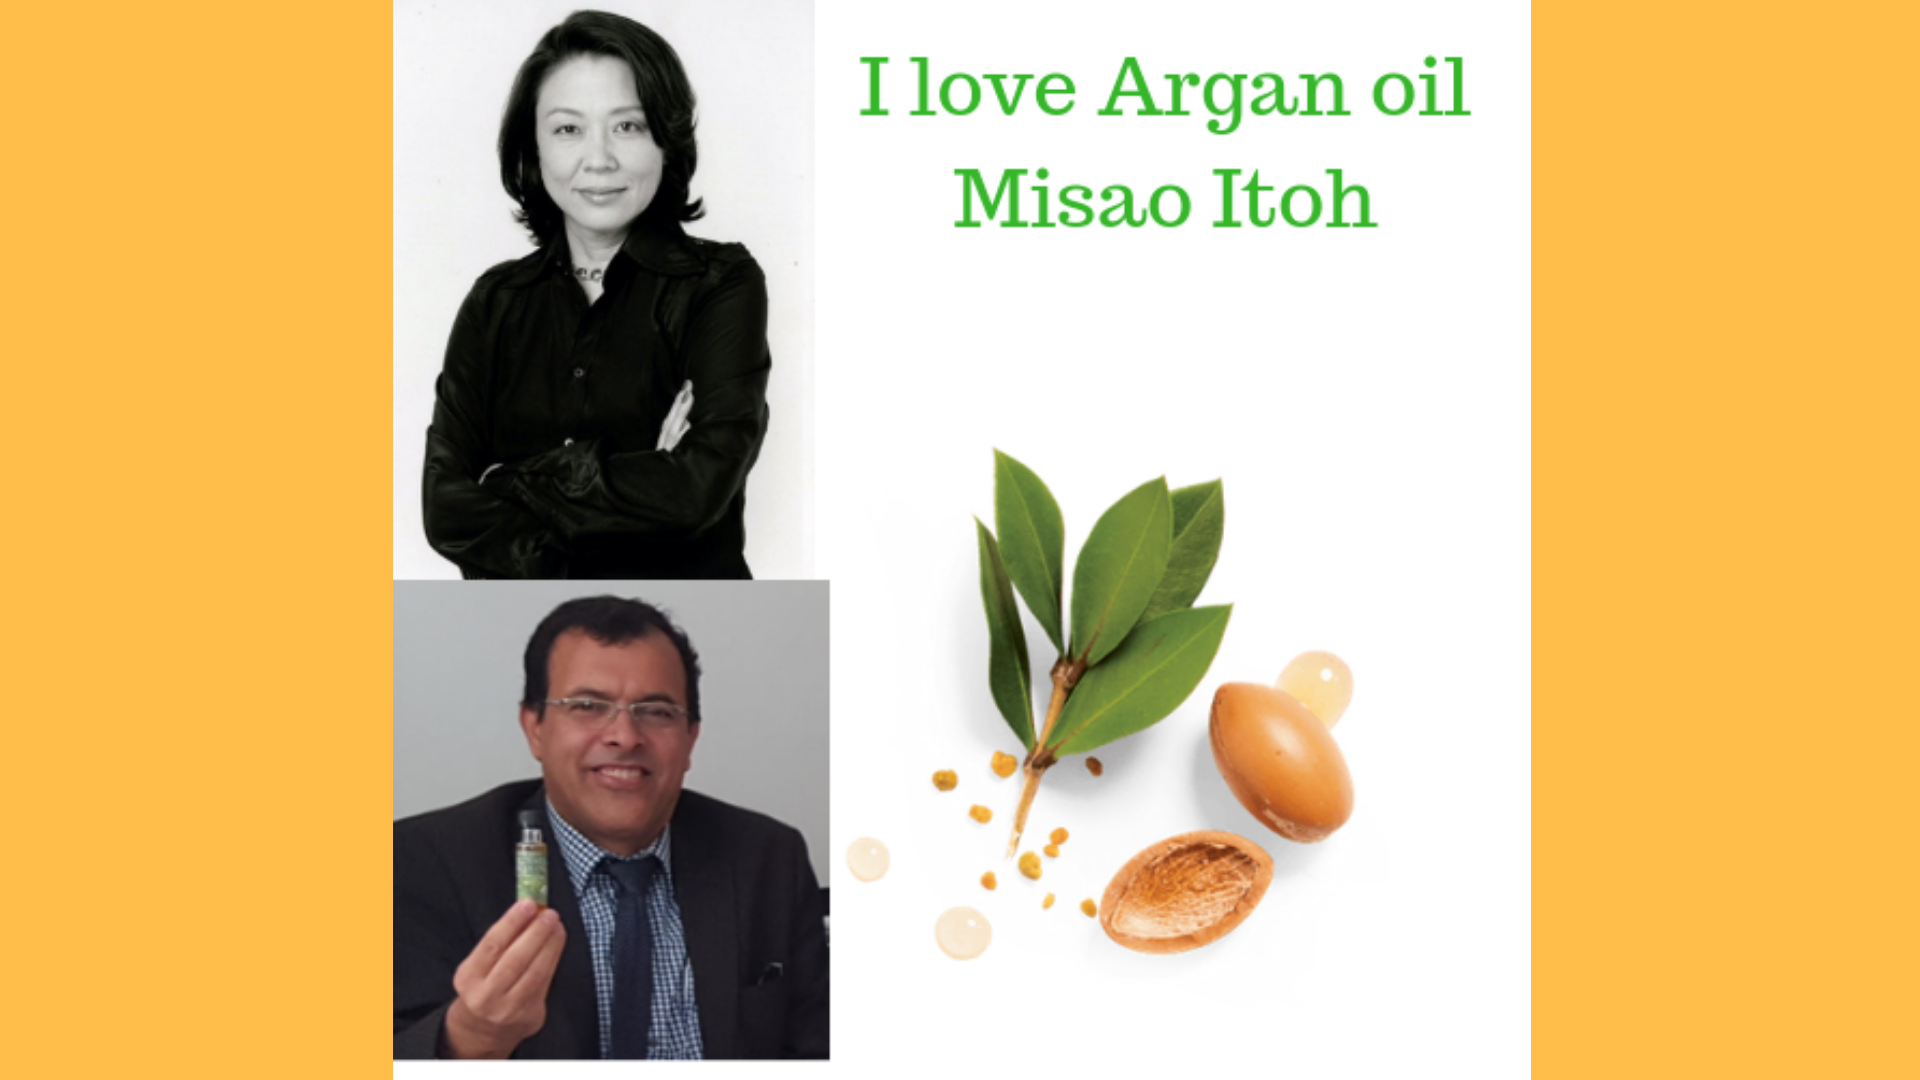 I love Argan oil Misao Itoh